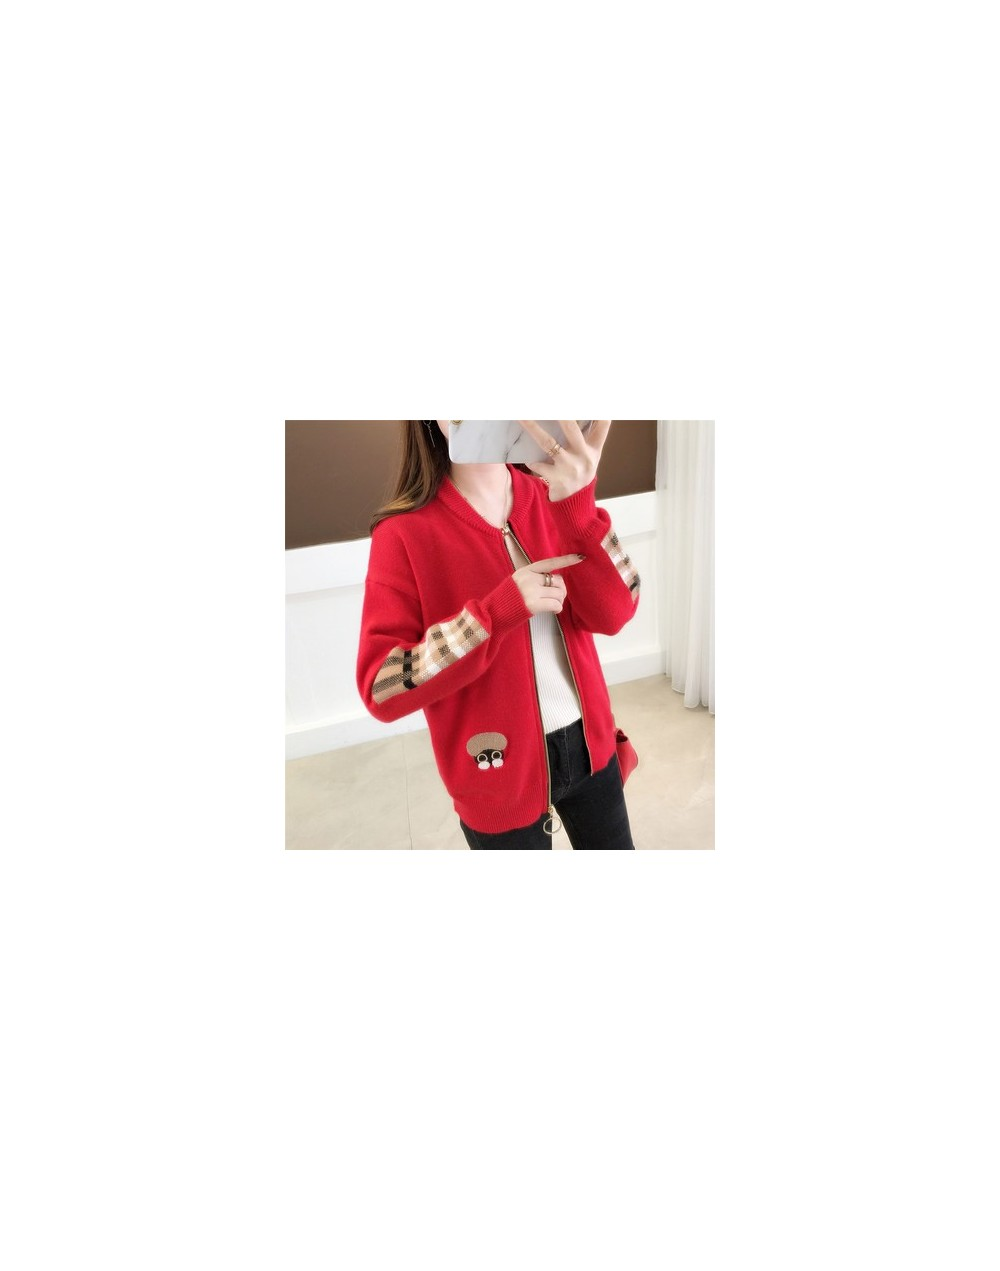 2019 The new spring large size women embroidered sweater long sleeve zipper cardigan coat F1761 - -R - 493922702738-16